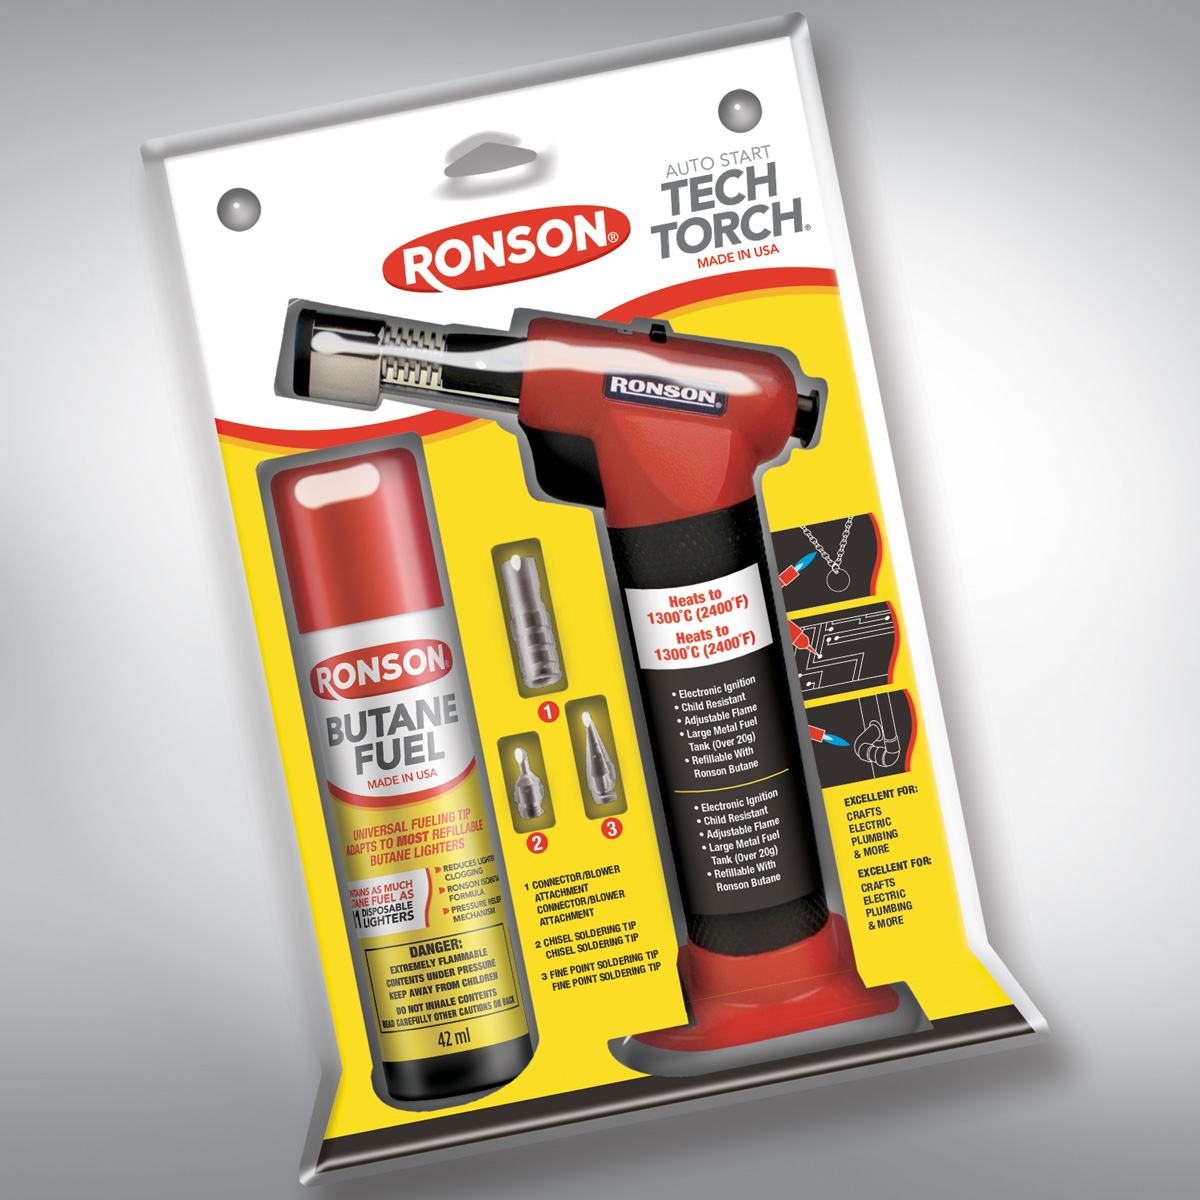 Ronson Tech Torch